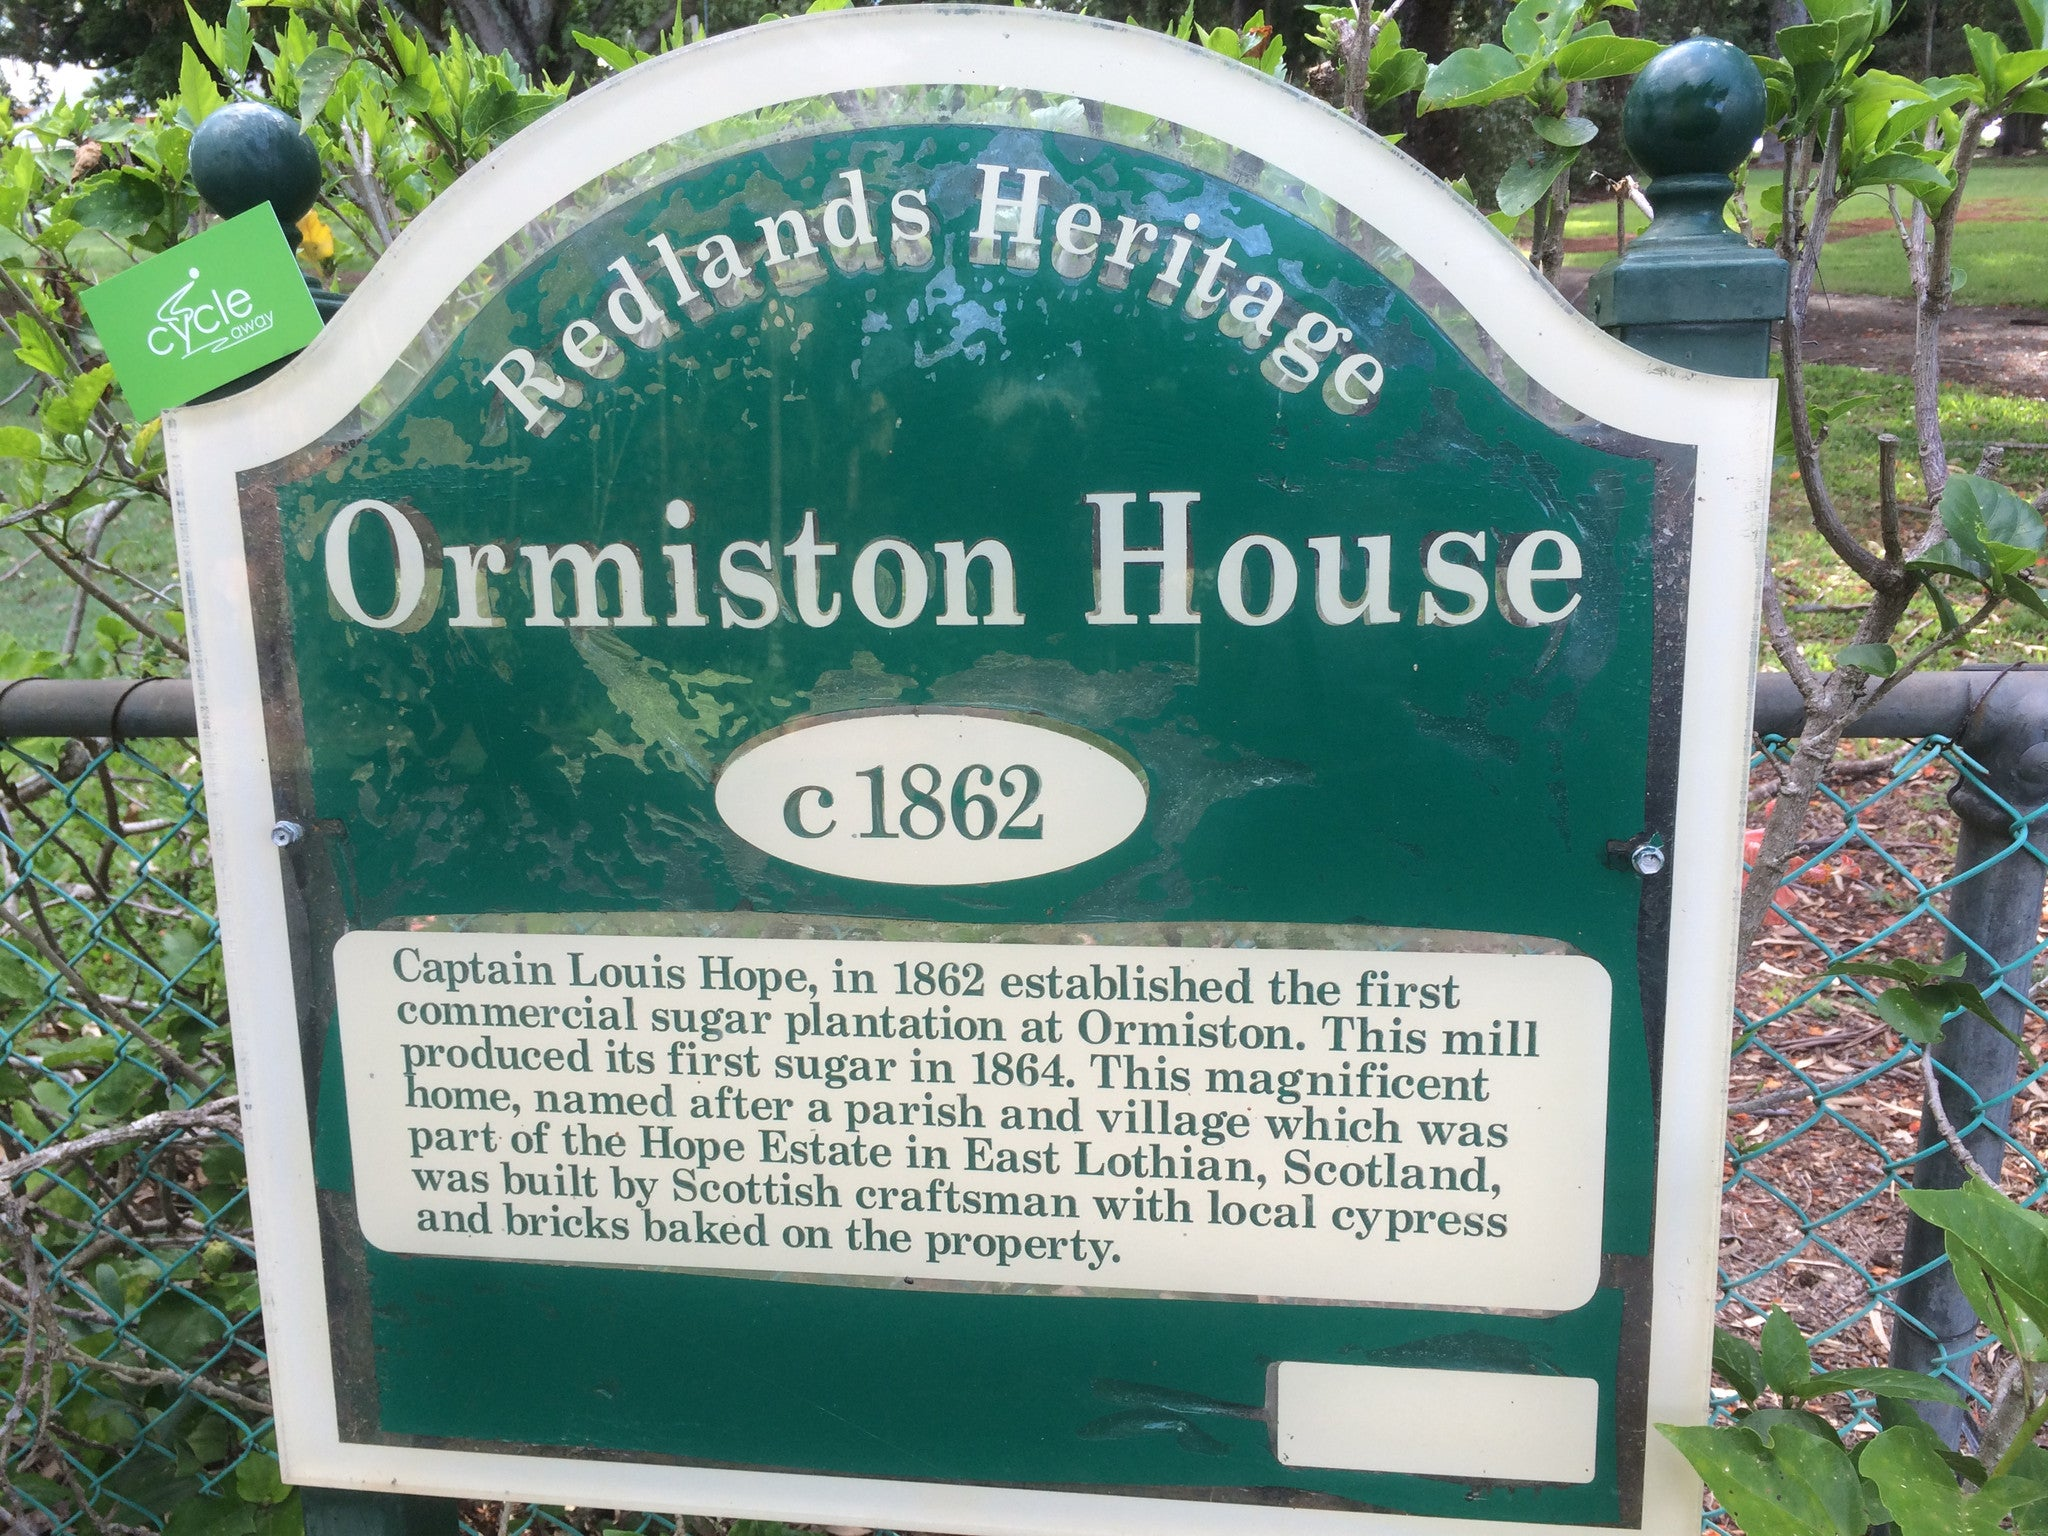 Ormiston House